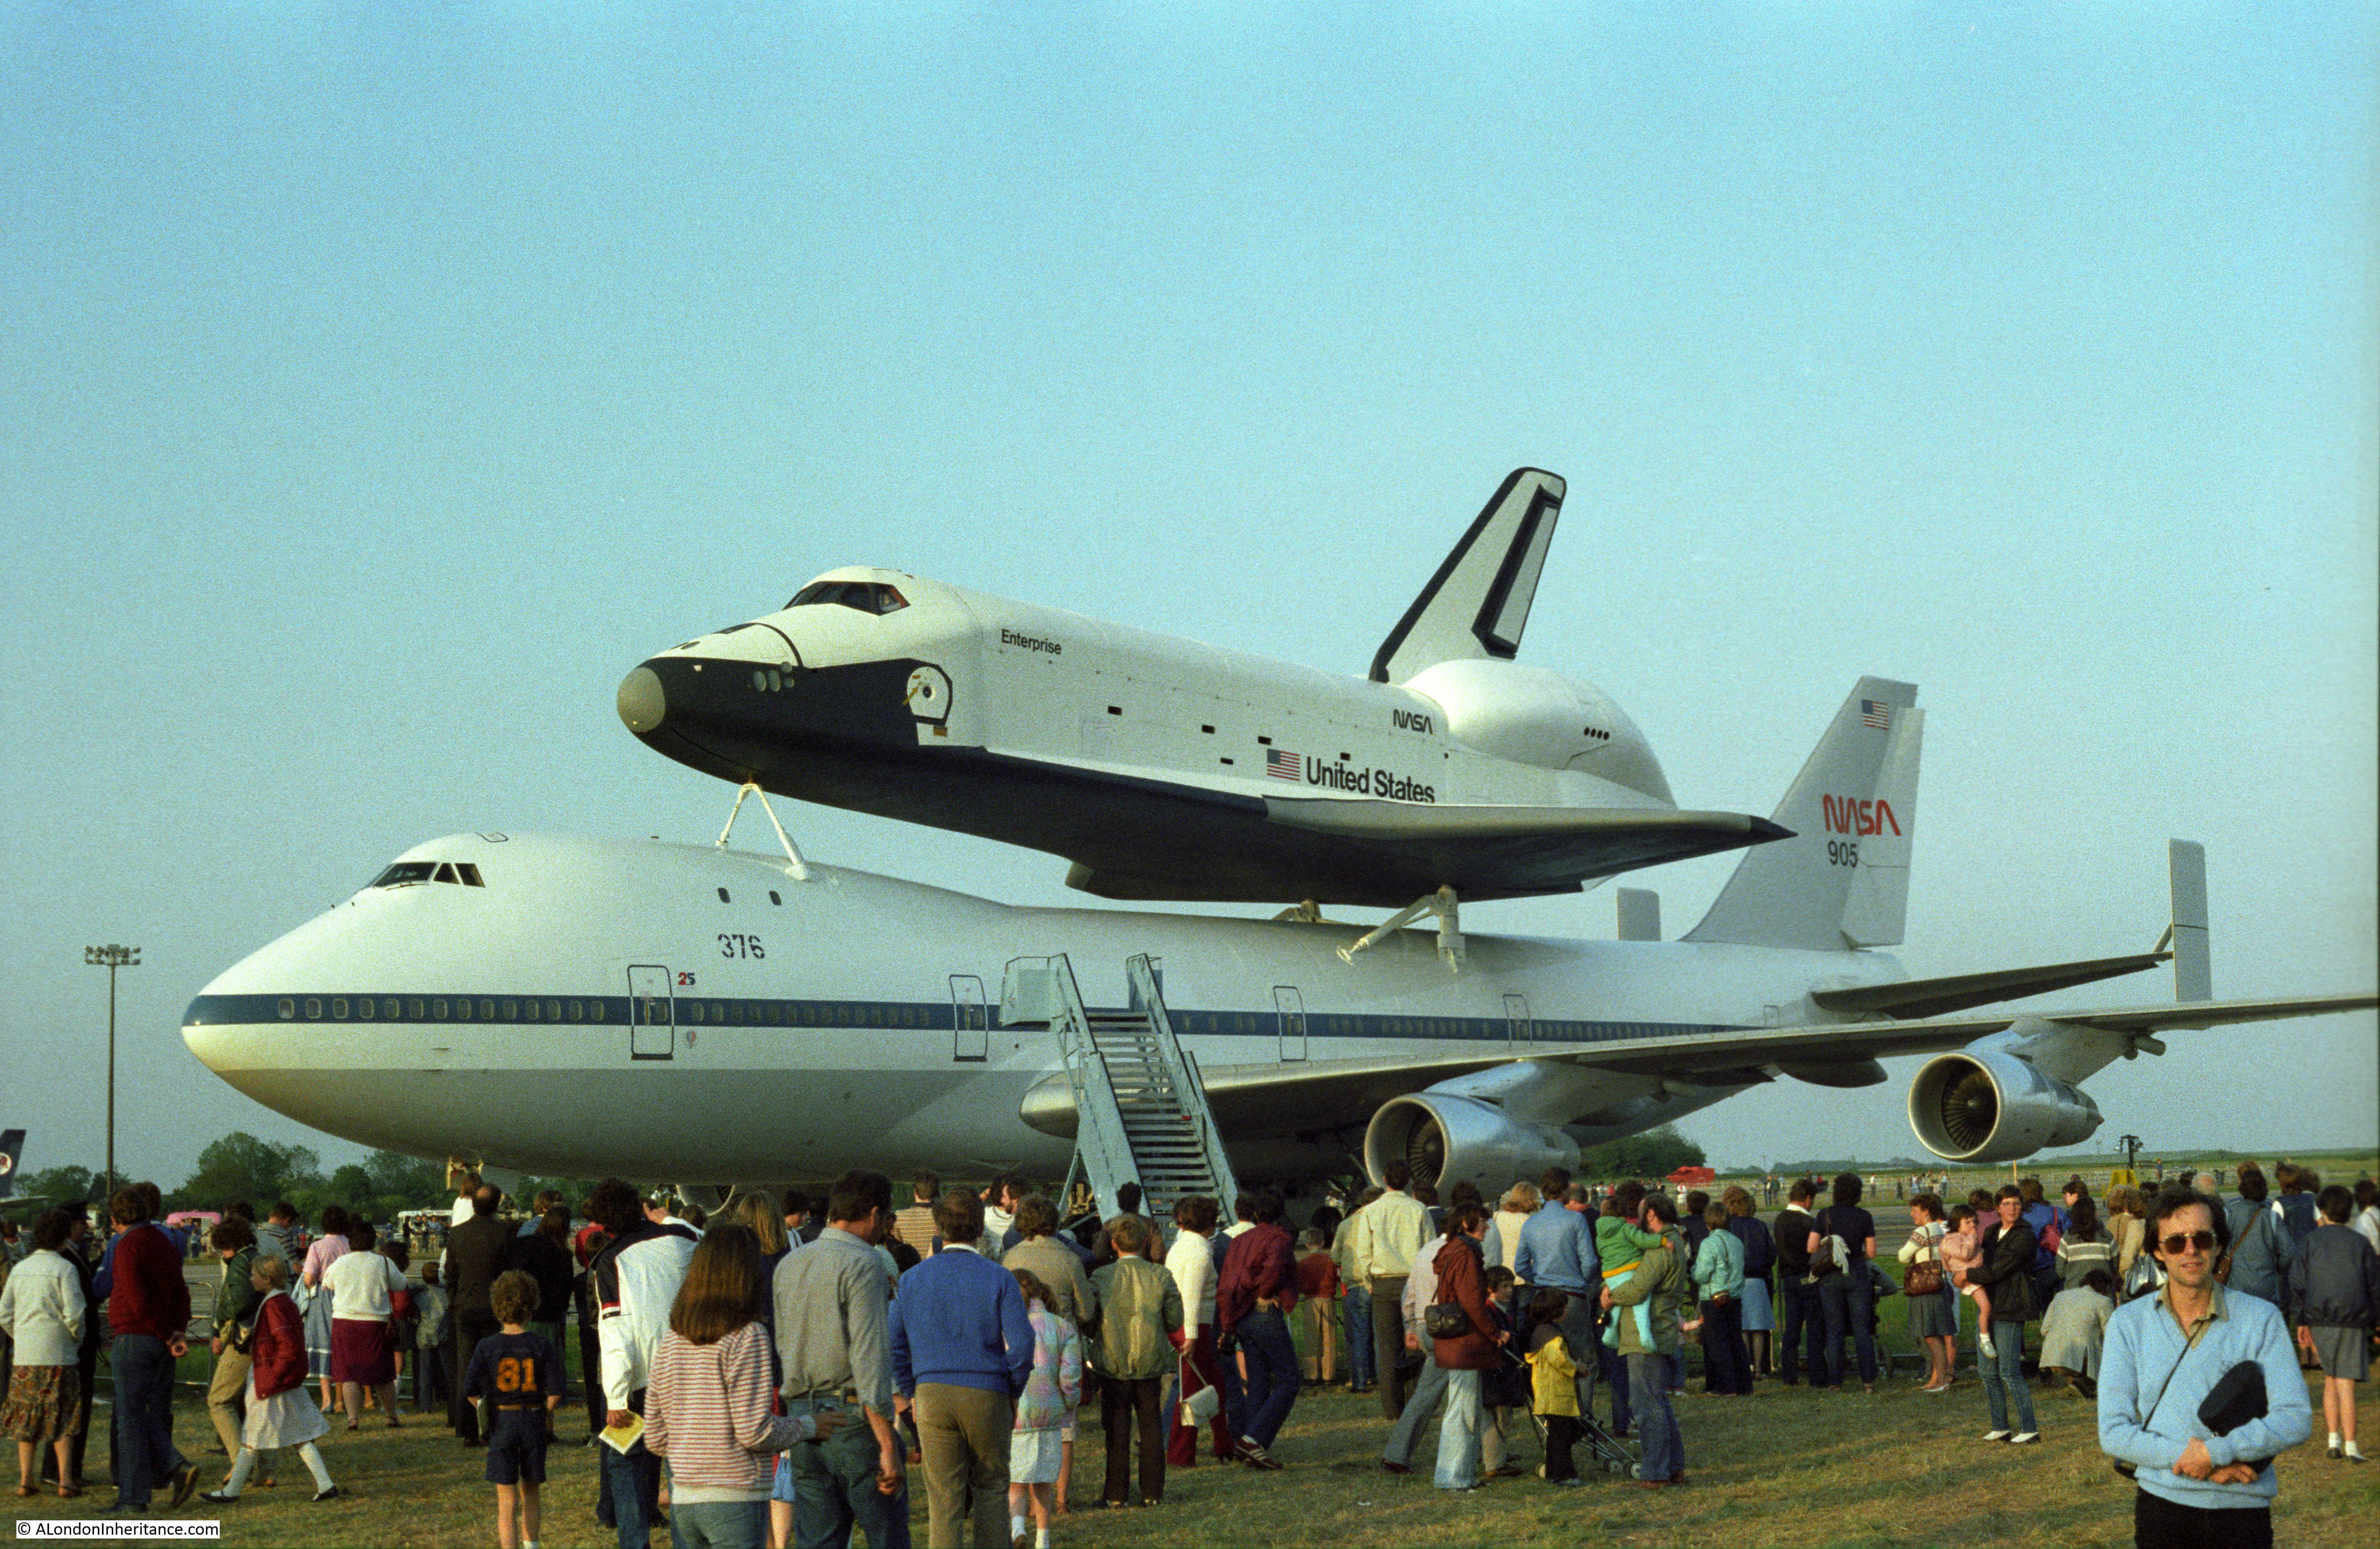 space shuttle landing at stansted - photo #7